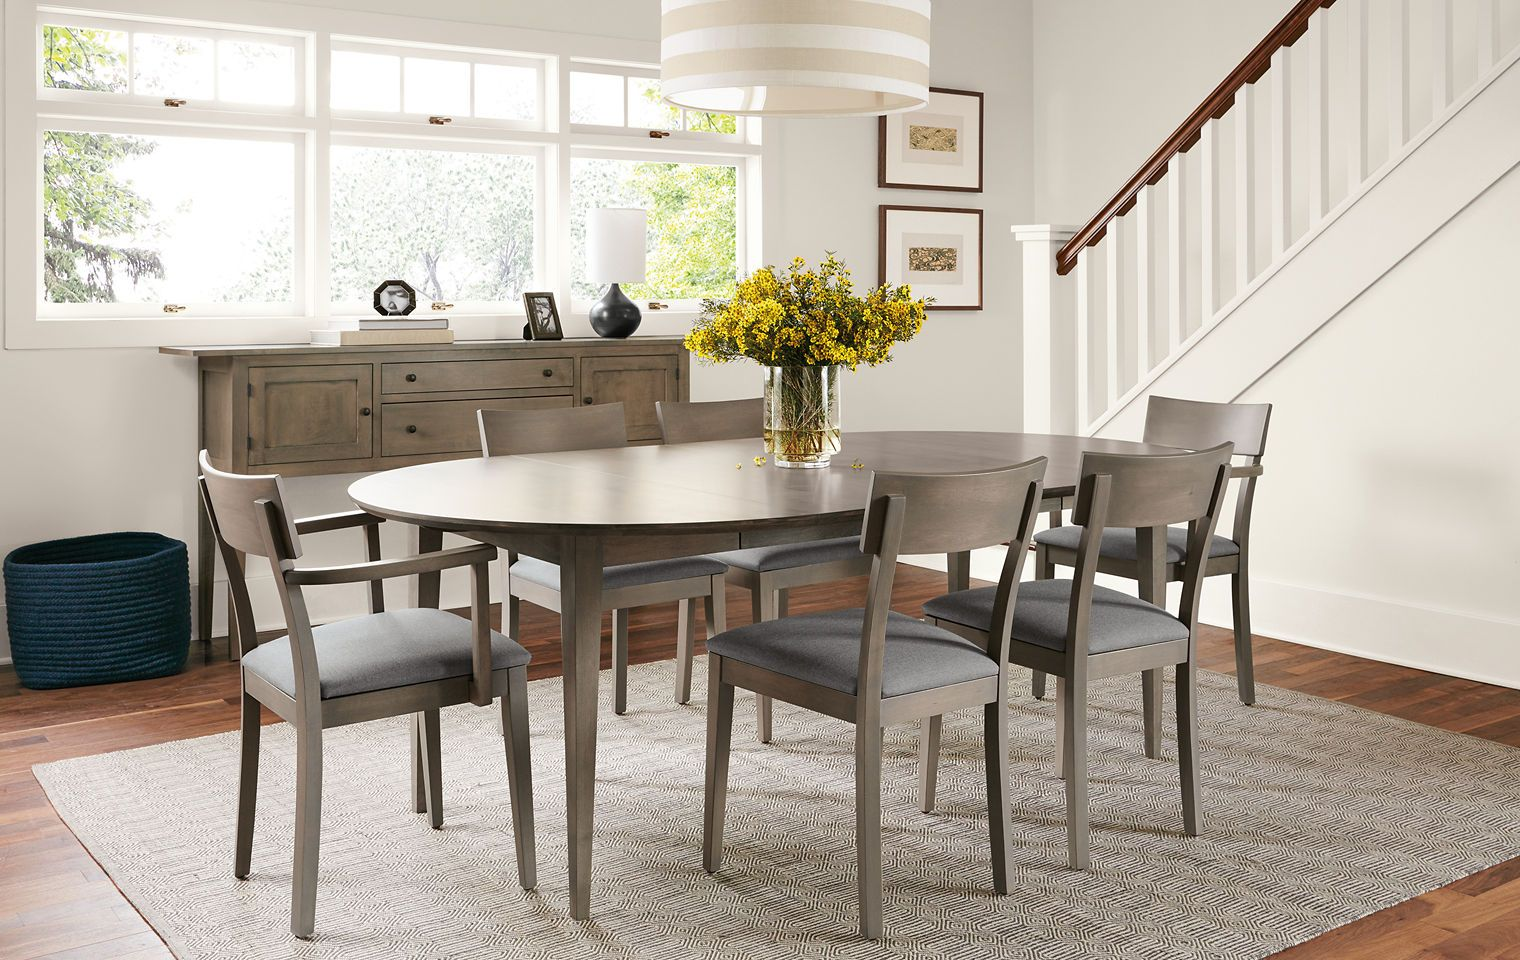 Dining Room Extension Table Adorable Modern Dining Room Furniture  Room & Board   Dining Space 2018